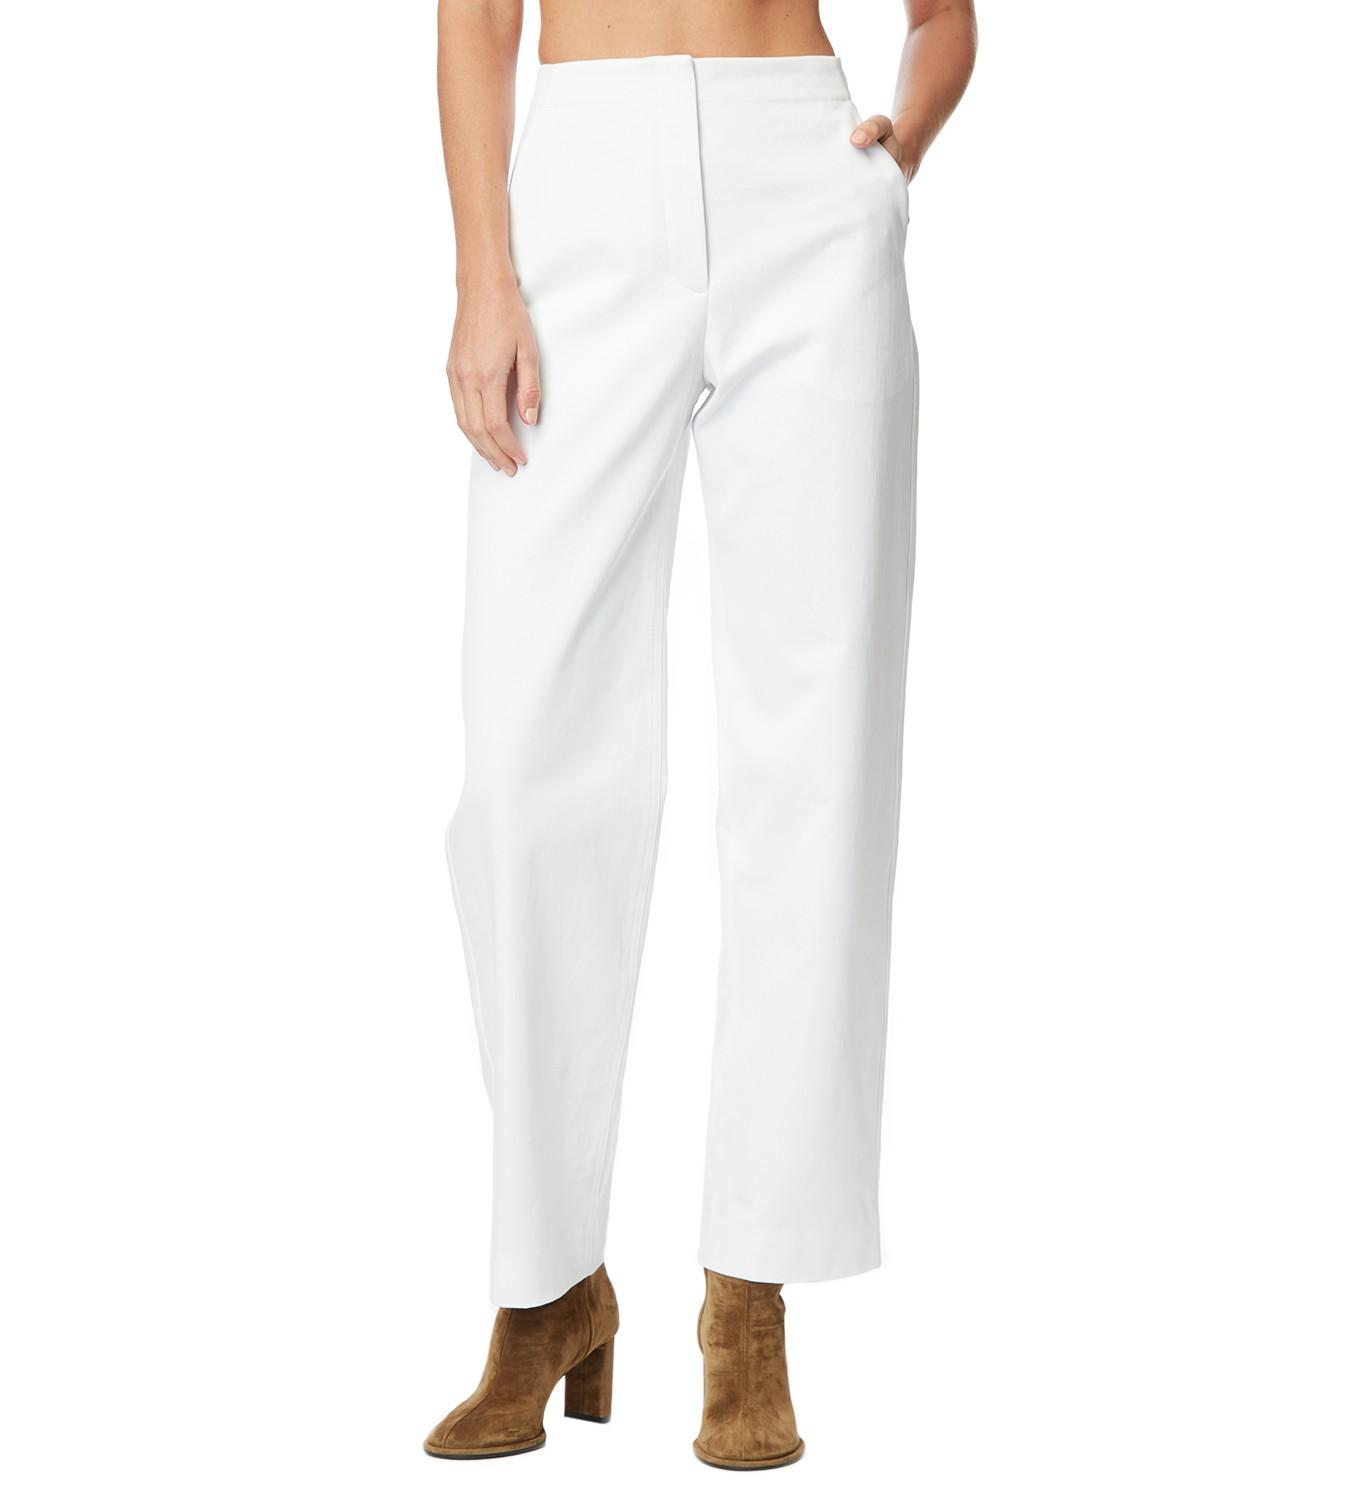 ed6a7d575c59b9 ... Taylor White Cotton Pants - Lyst. View fullscreen